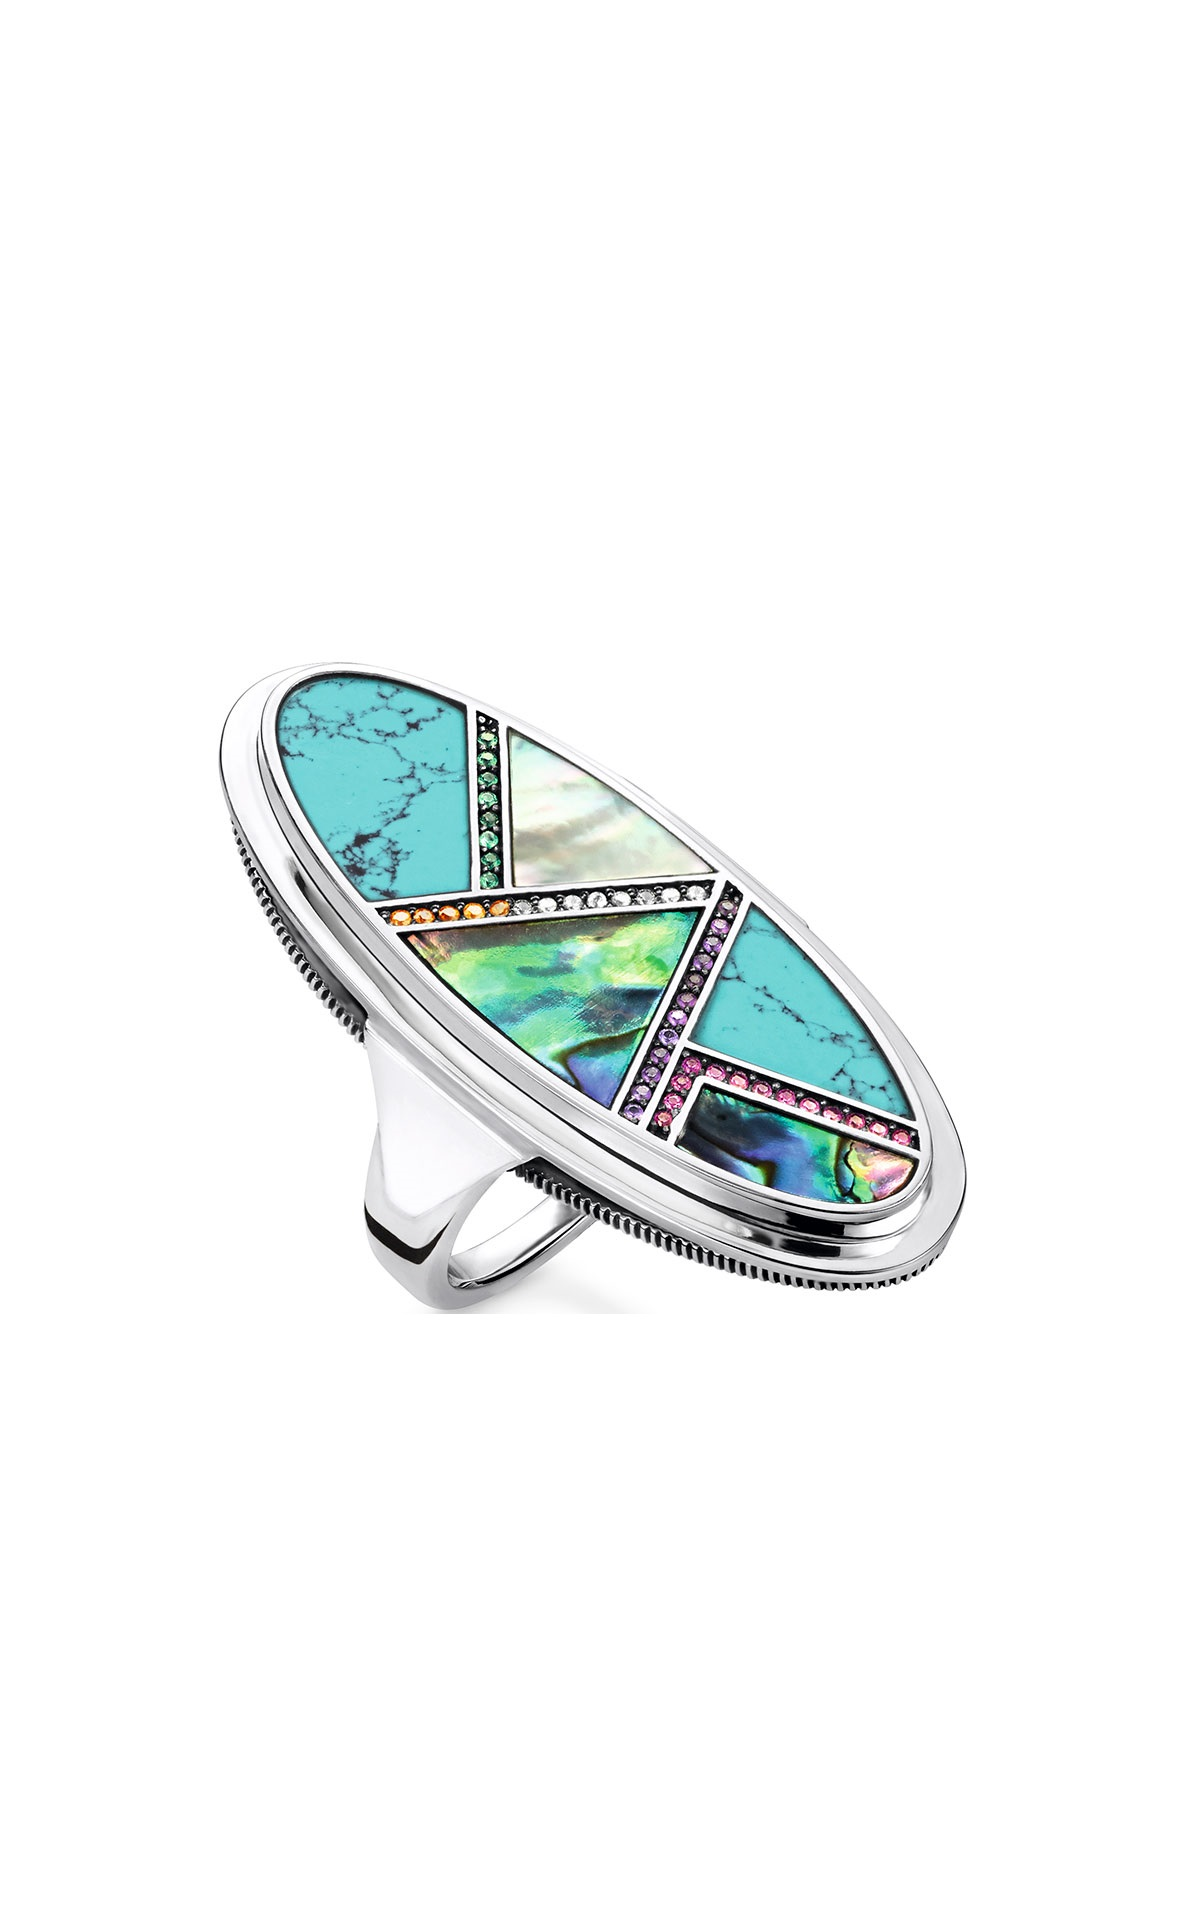 Silver ring with blue stones Thomas Sabo